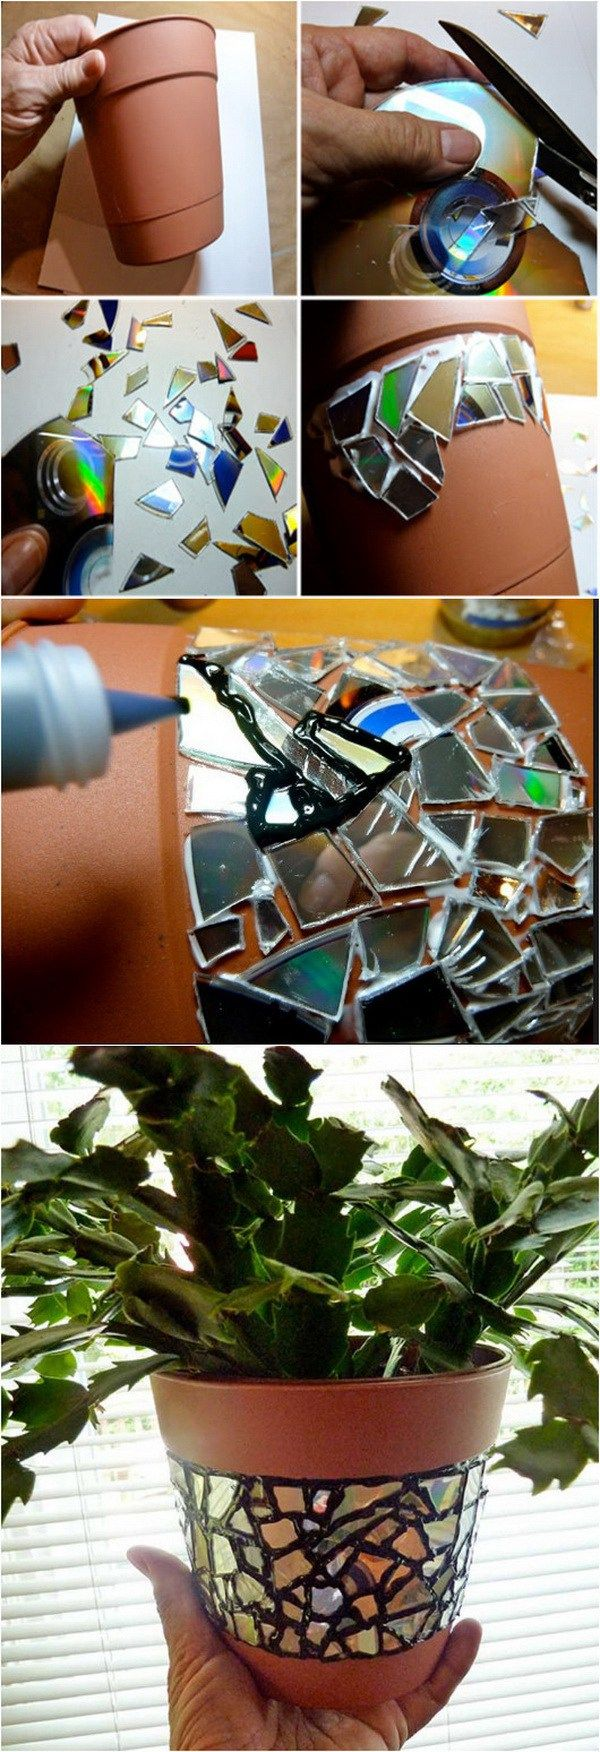 Brilliant DIY Ideas To Recycle Old CDs #recycledcrafts